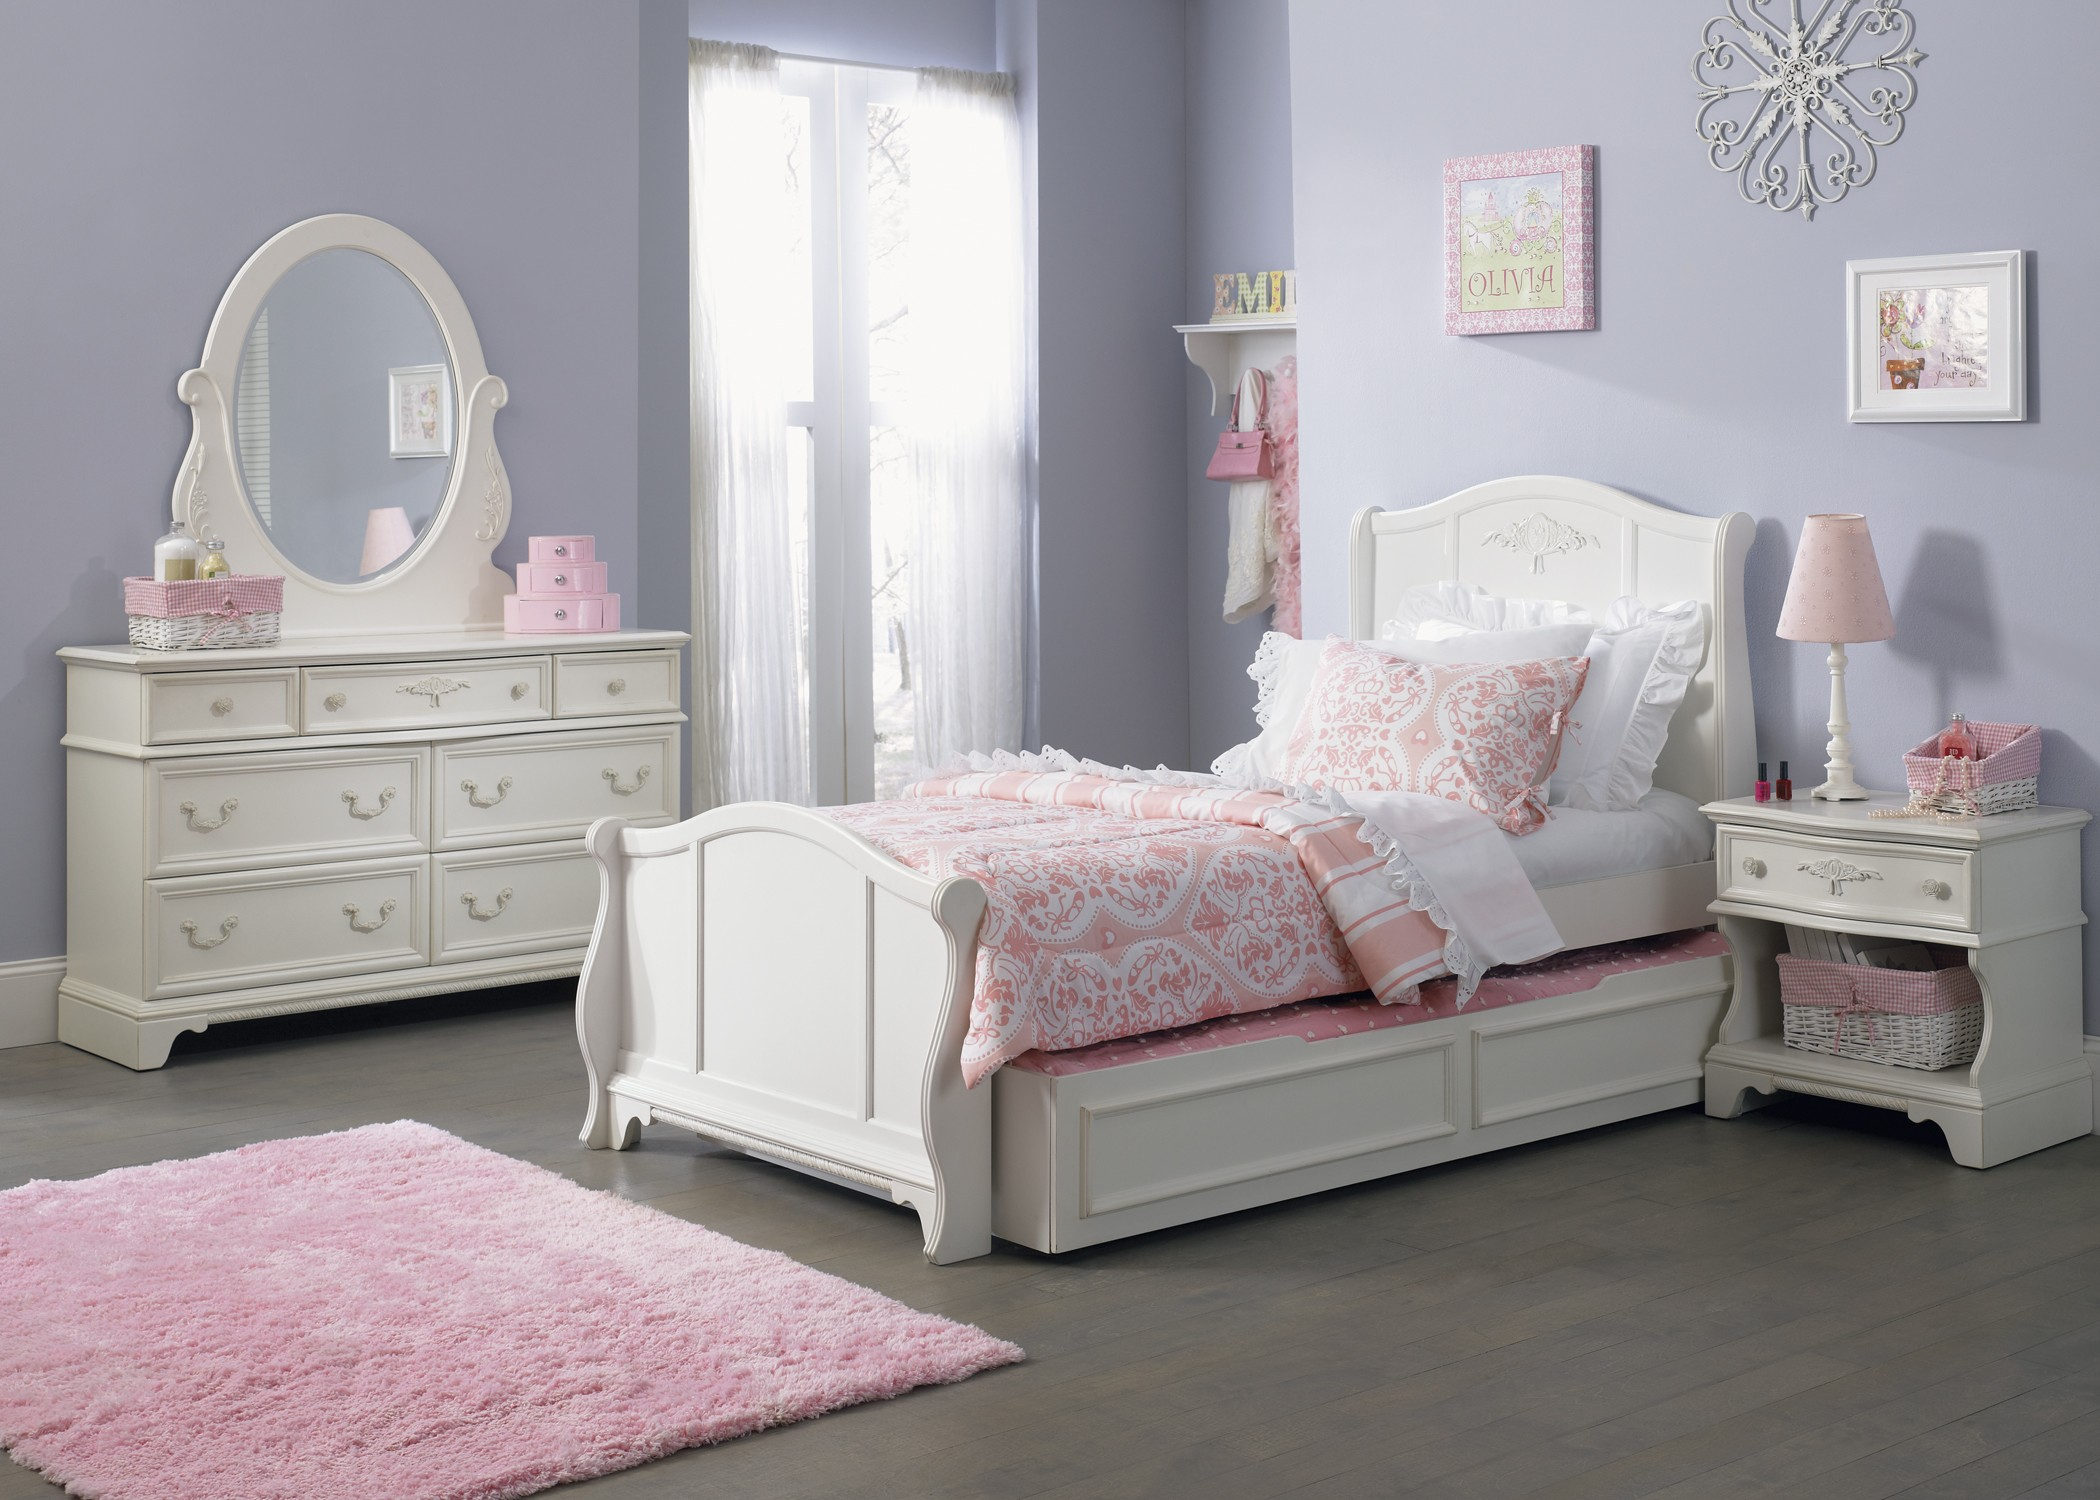 arielle youth sleigh bedroom set from liberty 352 ybr tsl rh colemanfurniture com